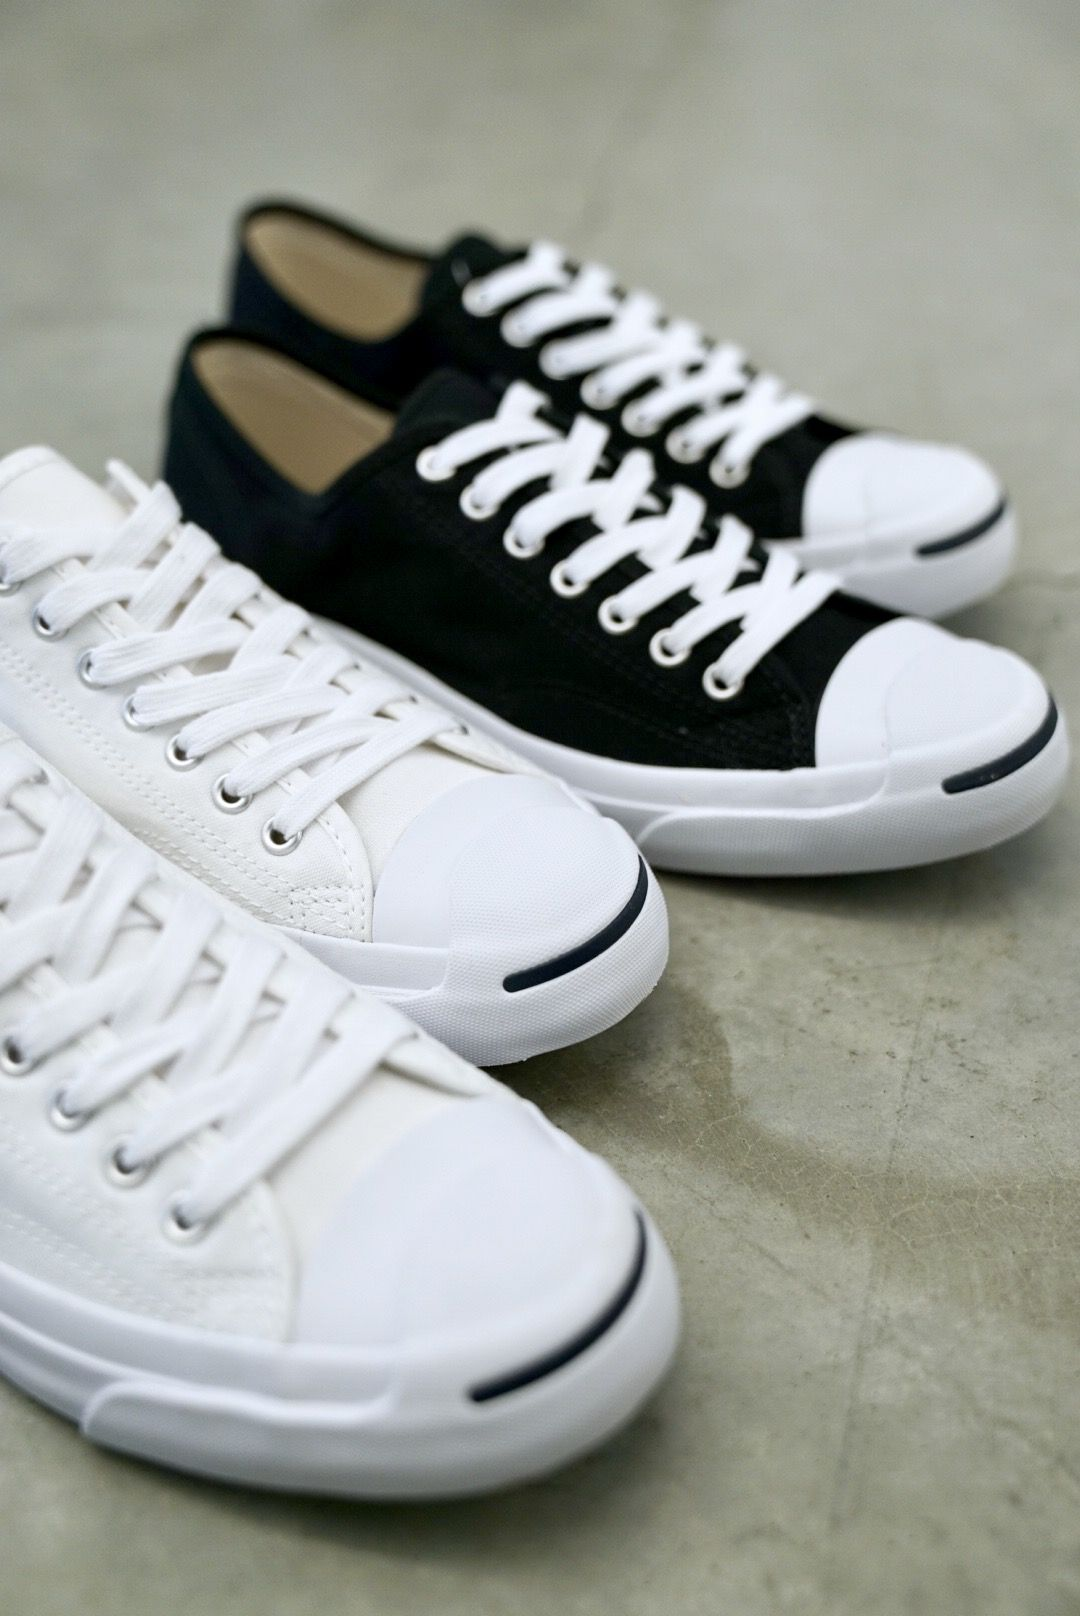 Jack purcell outfit, Chuck taylor shoes